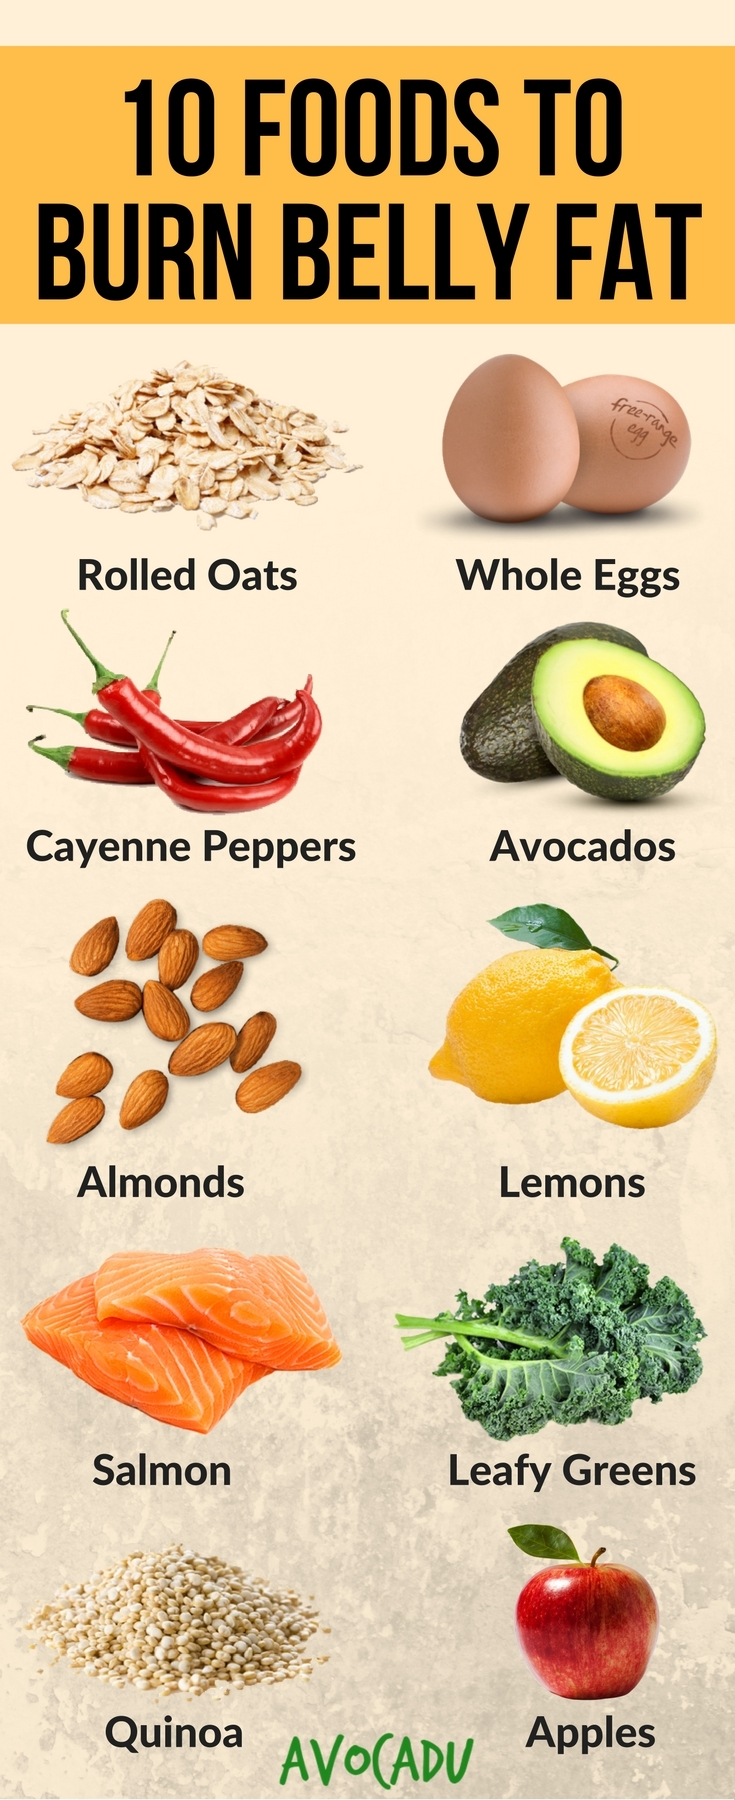 10 healthy foods to burn belly fat and lose weight fast diet tips 10 healthy foods to burn belly fat and lose weight fast diet tips http forumfinder Gallery